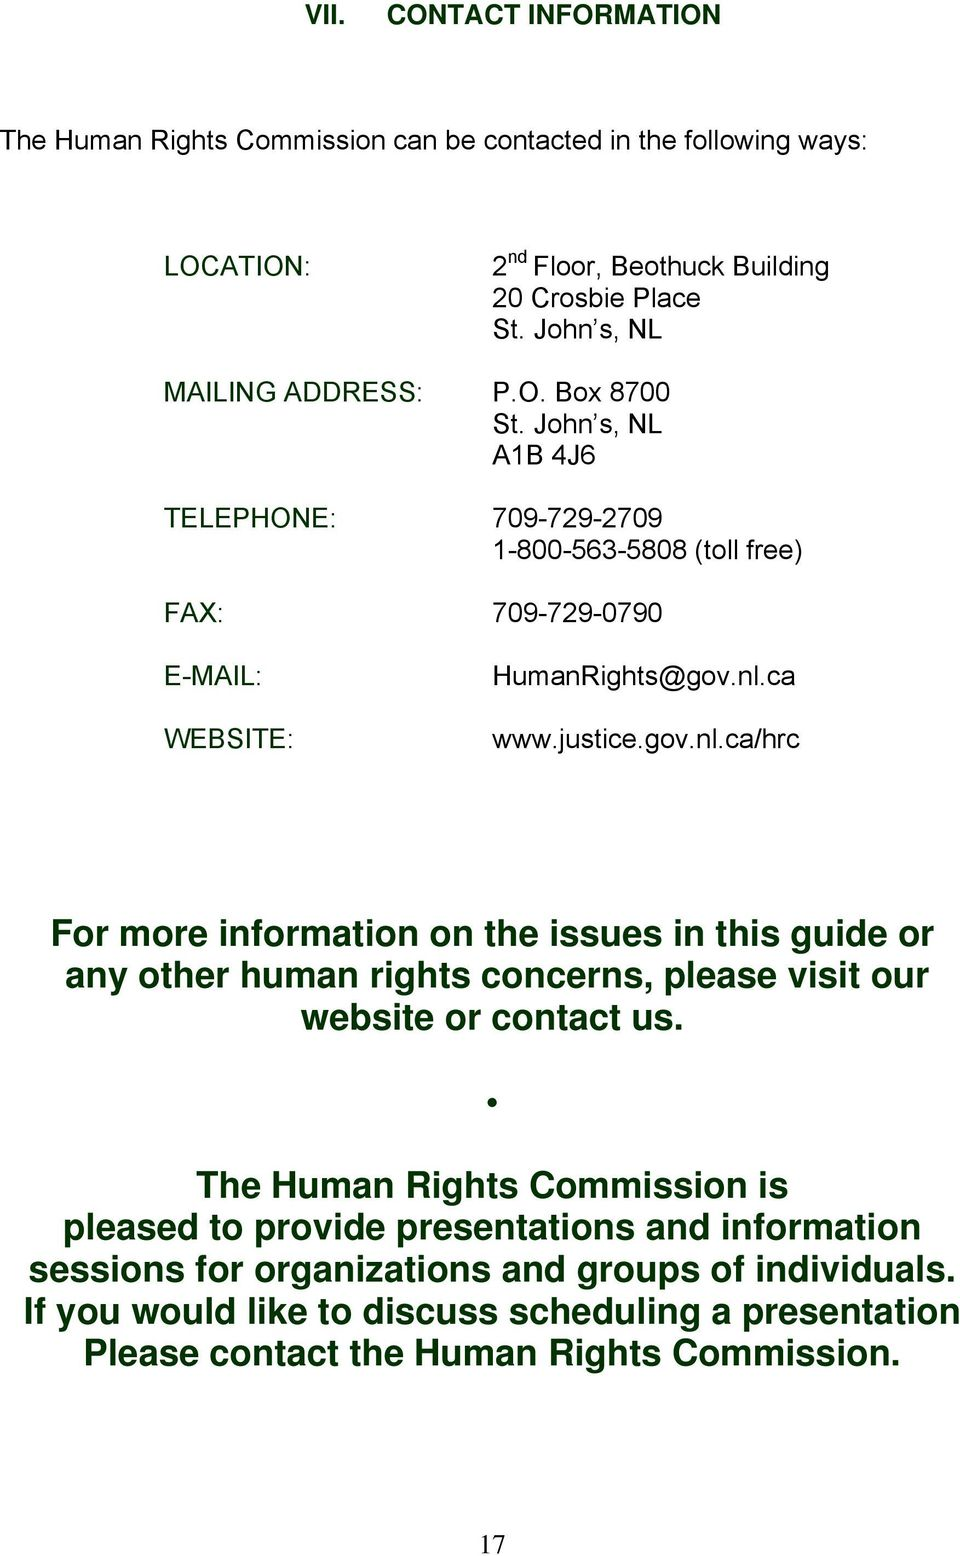 justice.gov.nl.ca/hrc For more information on the issues in this guide or any other human rights concerns, please visit our website or contact us.